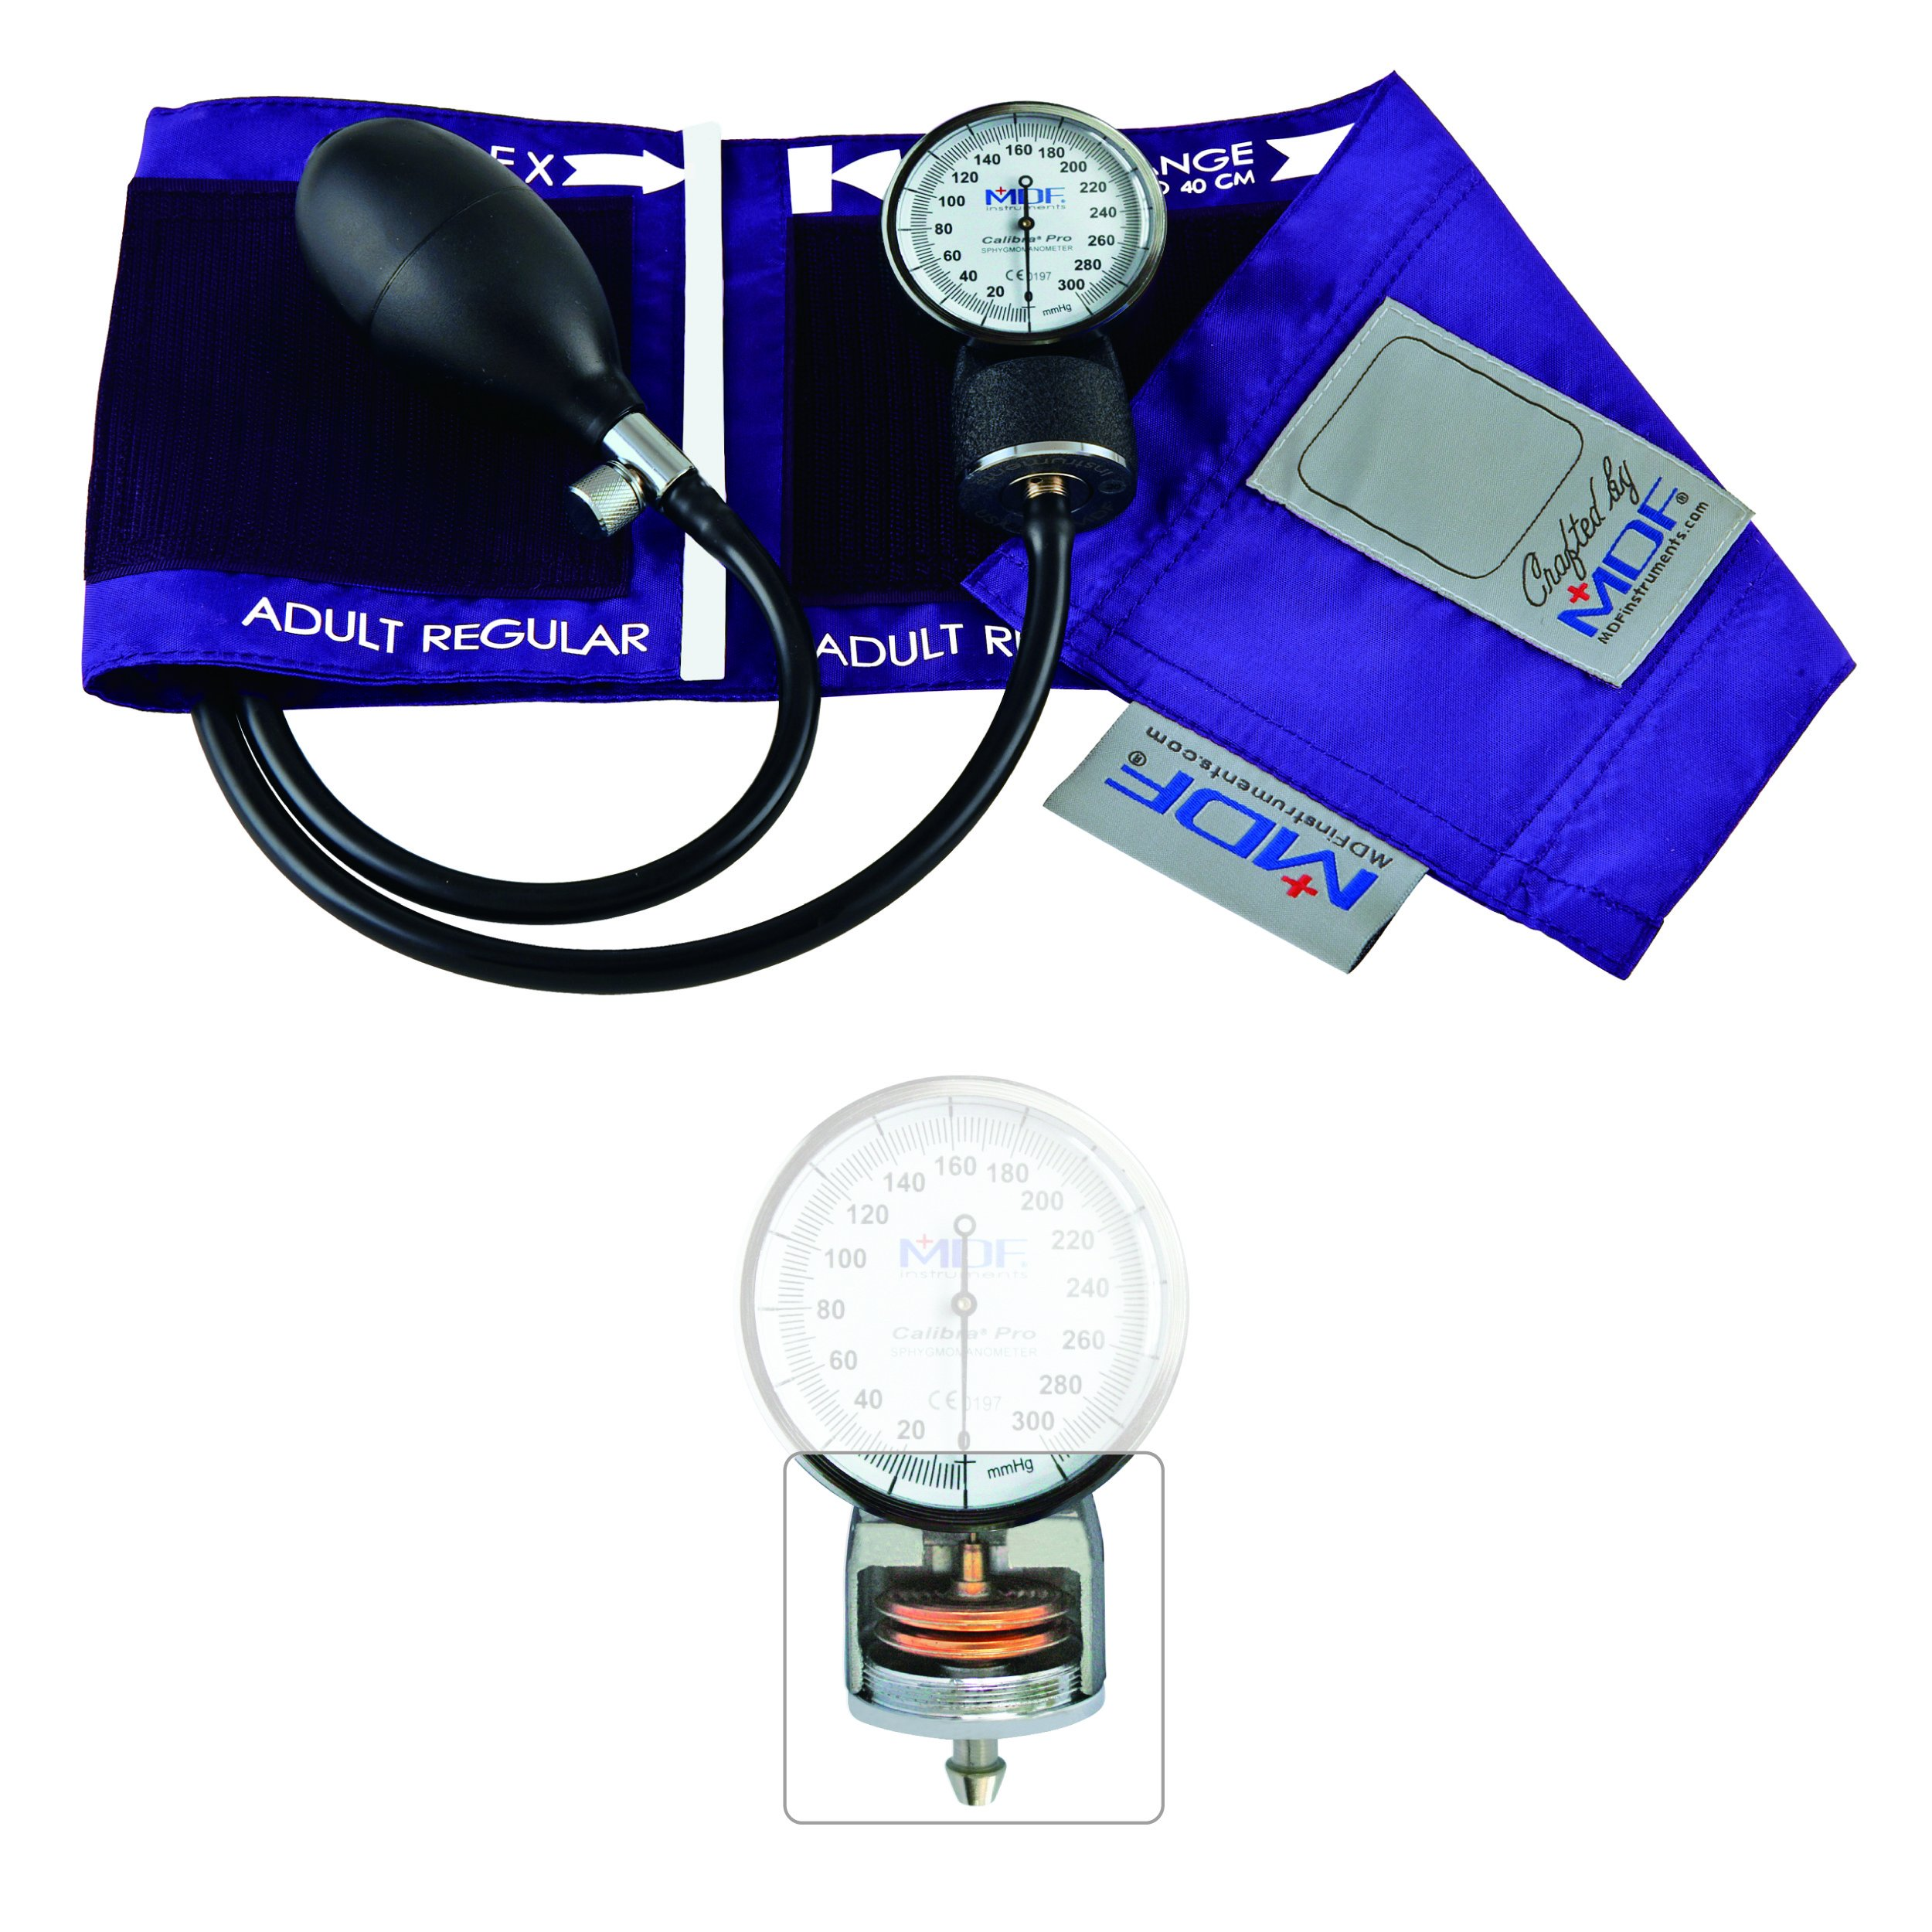 MDF Calibra Pro Aneroid Sphygmomanometer - Professional Blood Pressure Monitor with Adult Sized Cuff Included - Full Lifetime Warranty & Free-Parts-For-Life - Purple (MDF808B-08)